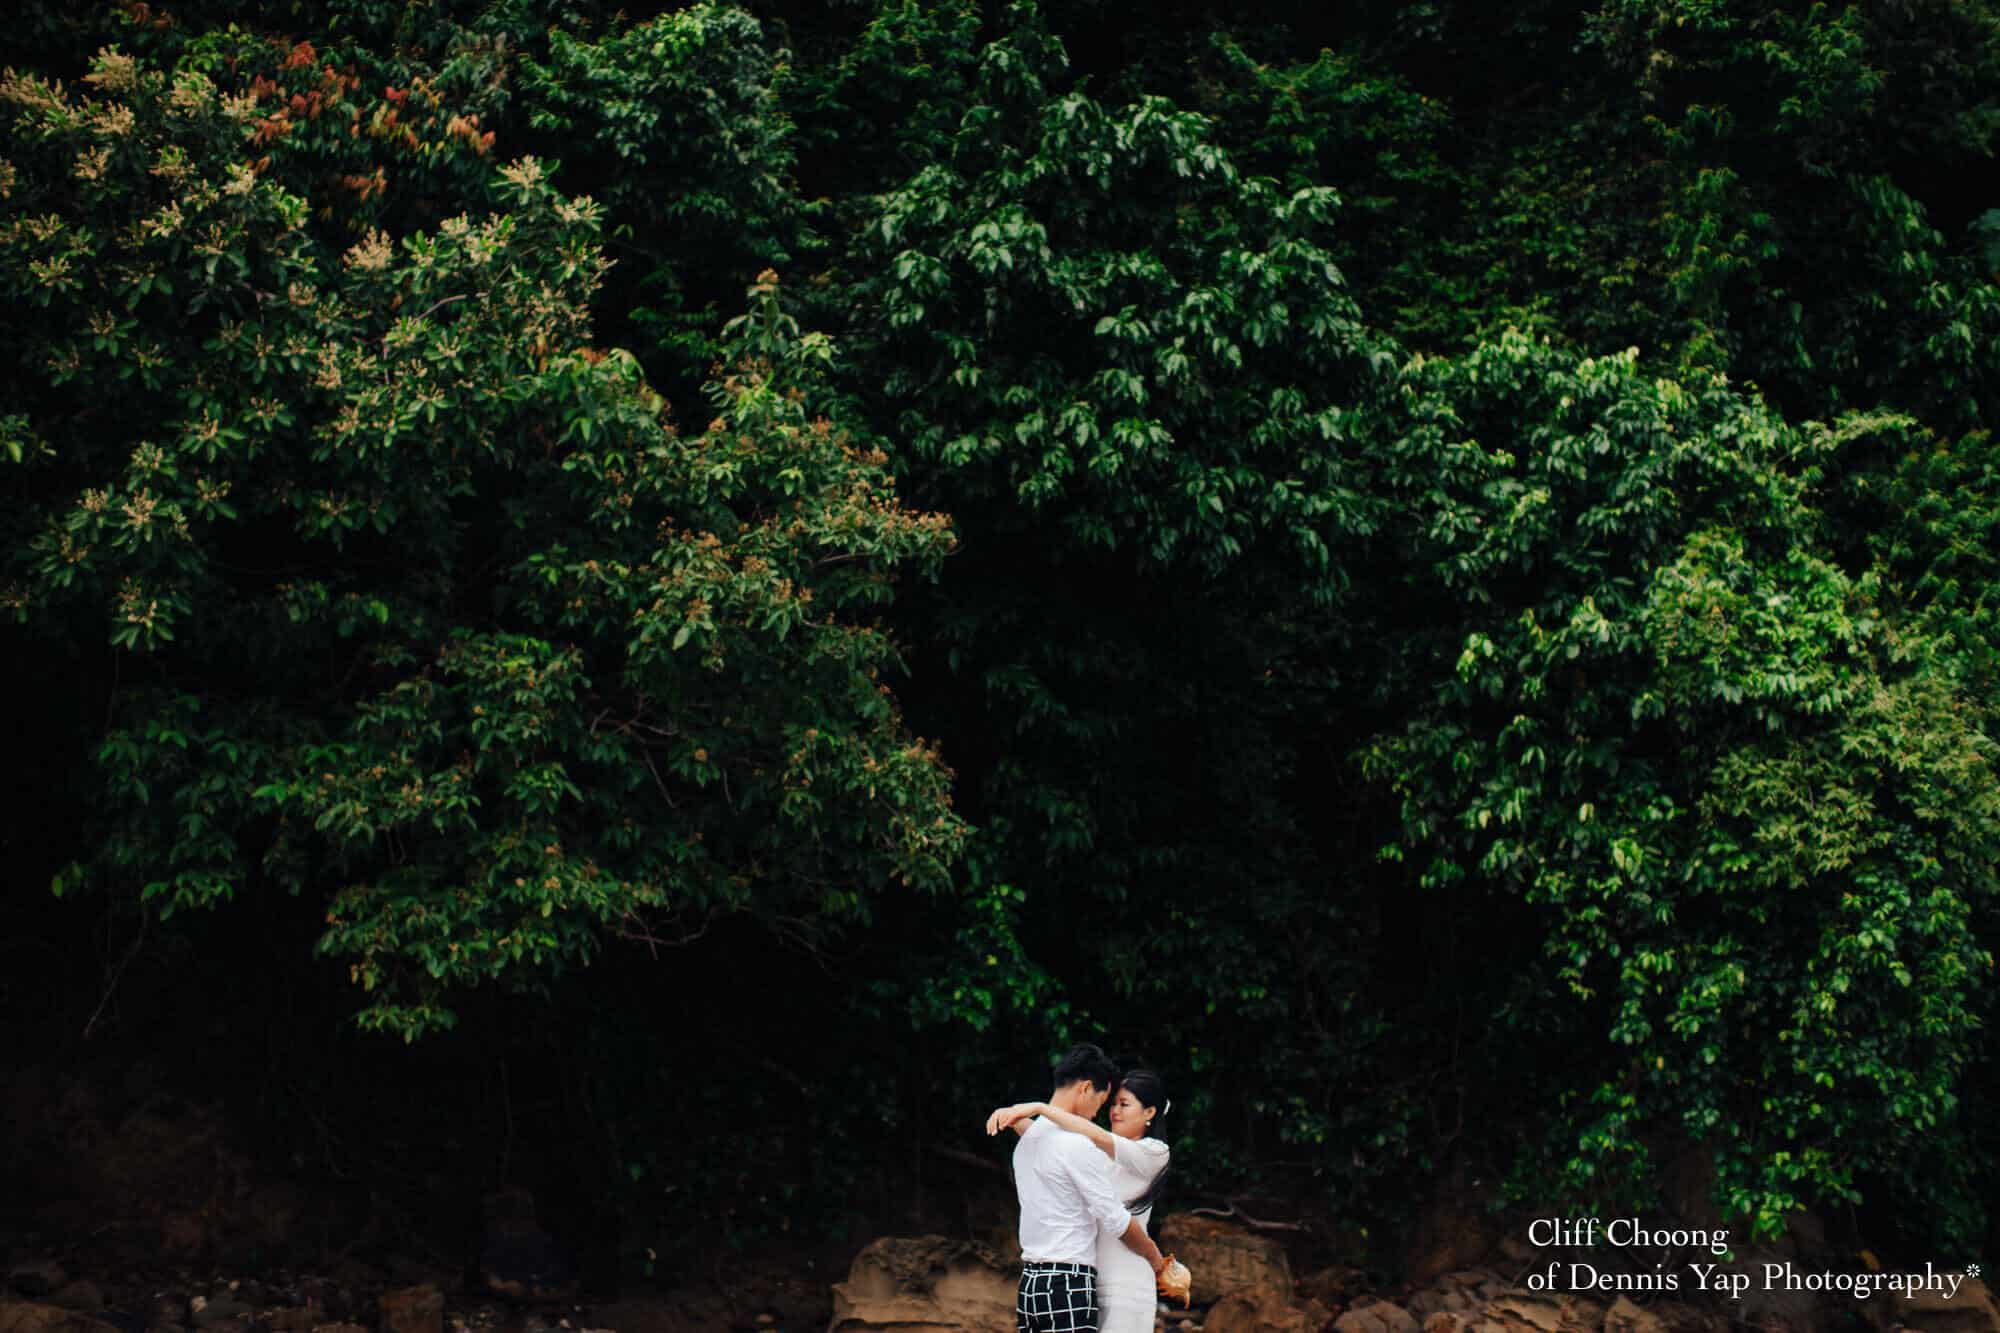 Malaysia Best Prewedding Destination Kota Kinabalu Engagement Photography Cliff Choong wedding photographer nature beach cloud blue sky kiss couple hug veil bridal gown